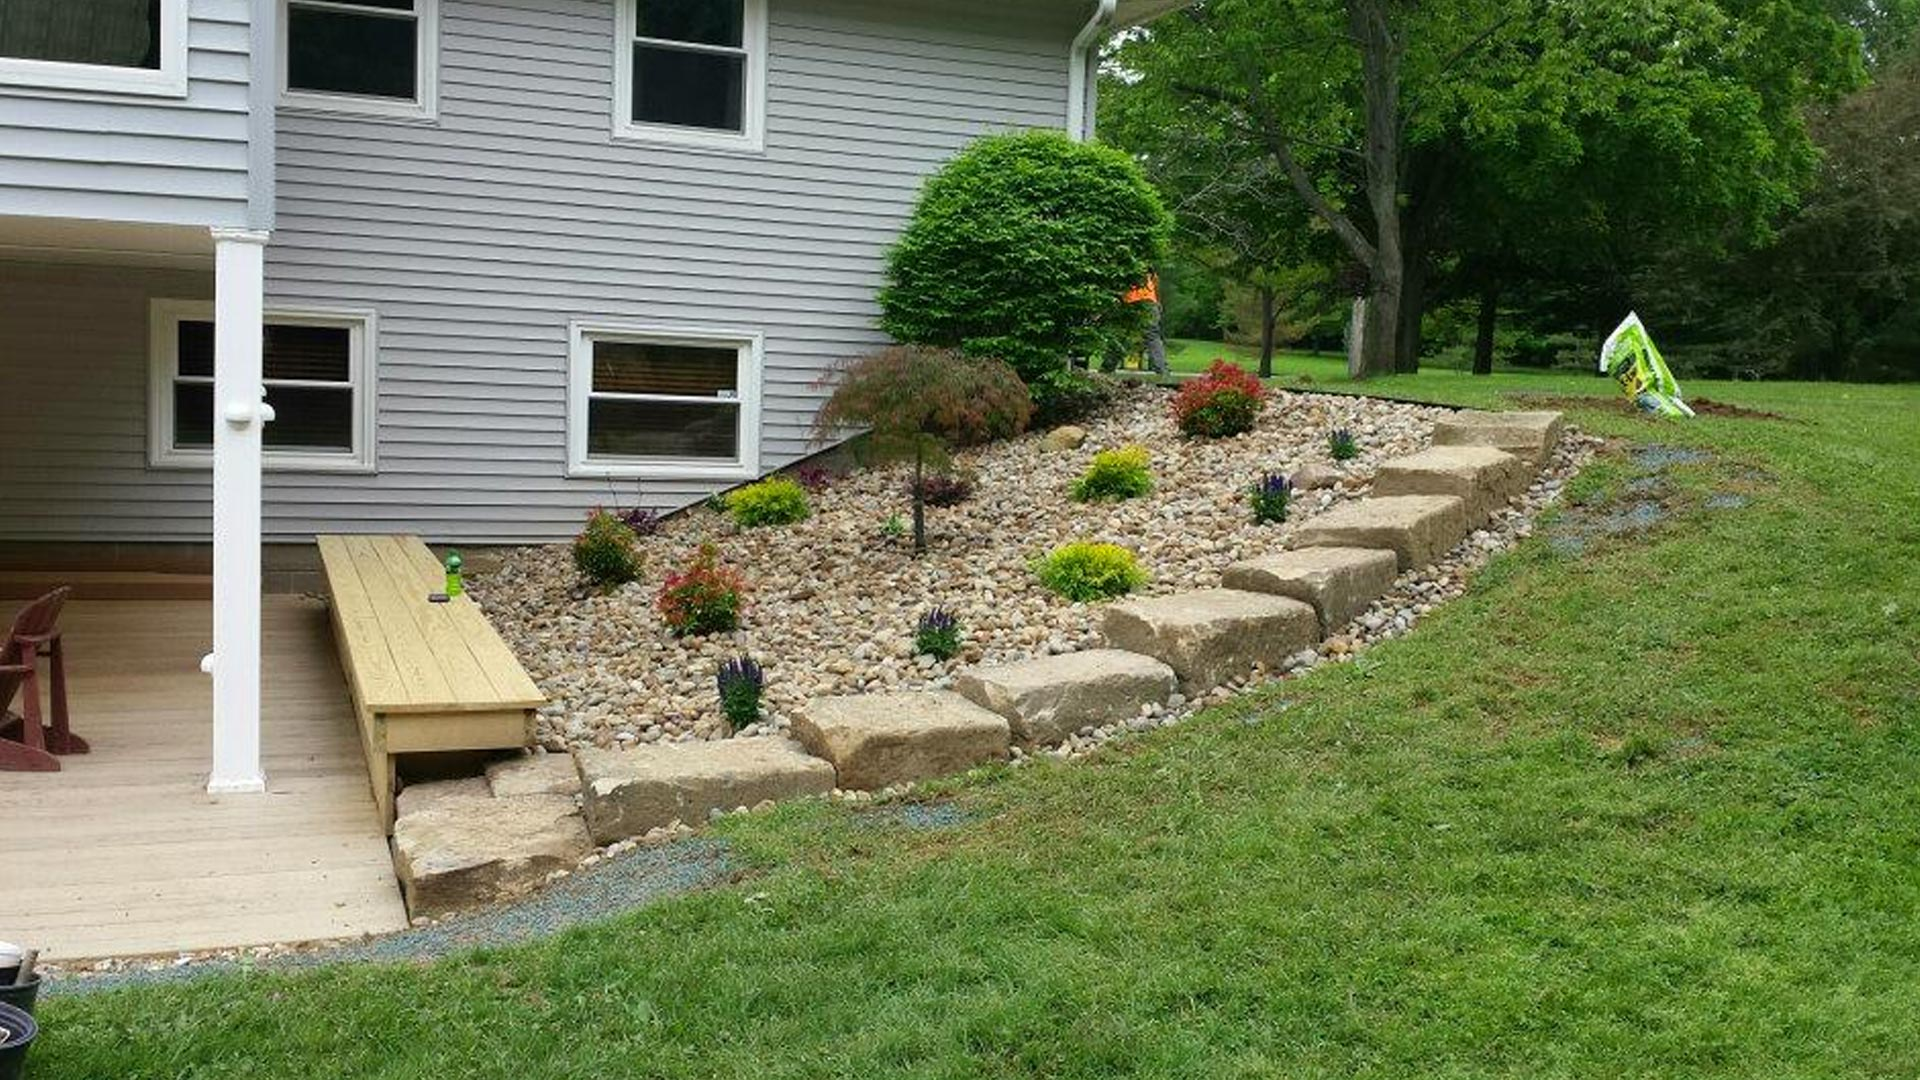 Landscaping with large boulders and river rock installed in Geneva, OH.